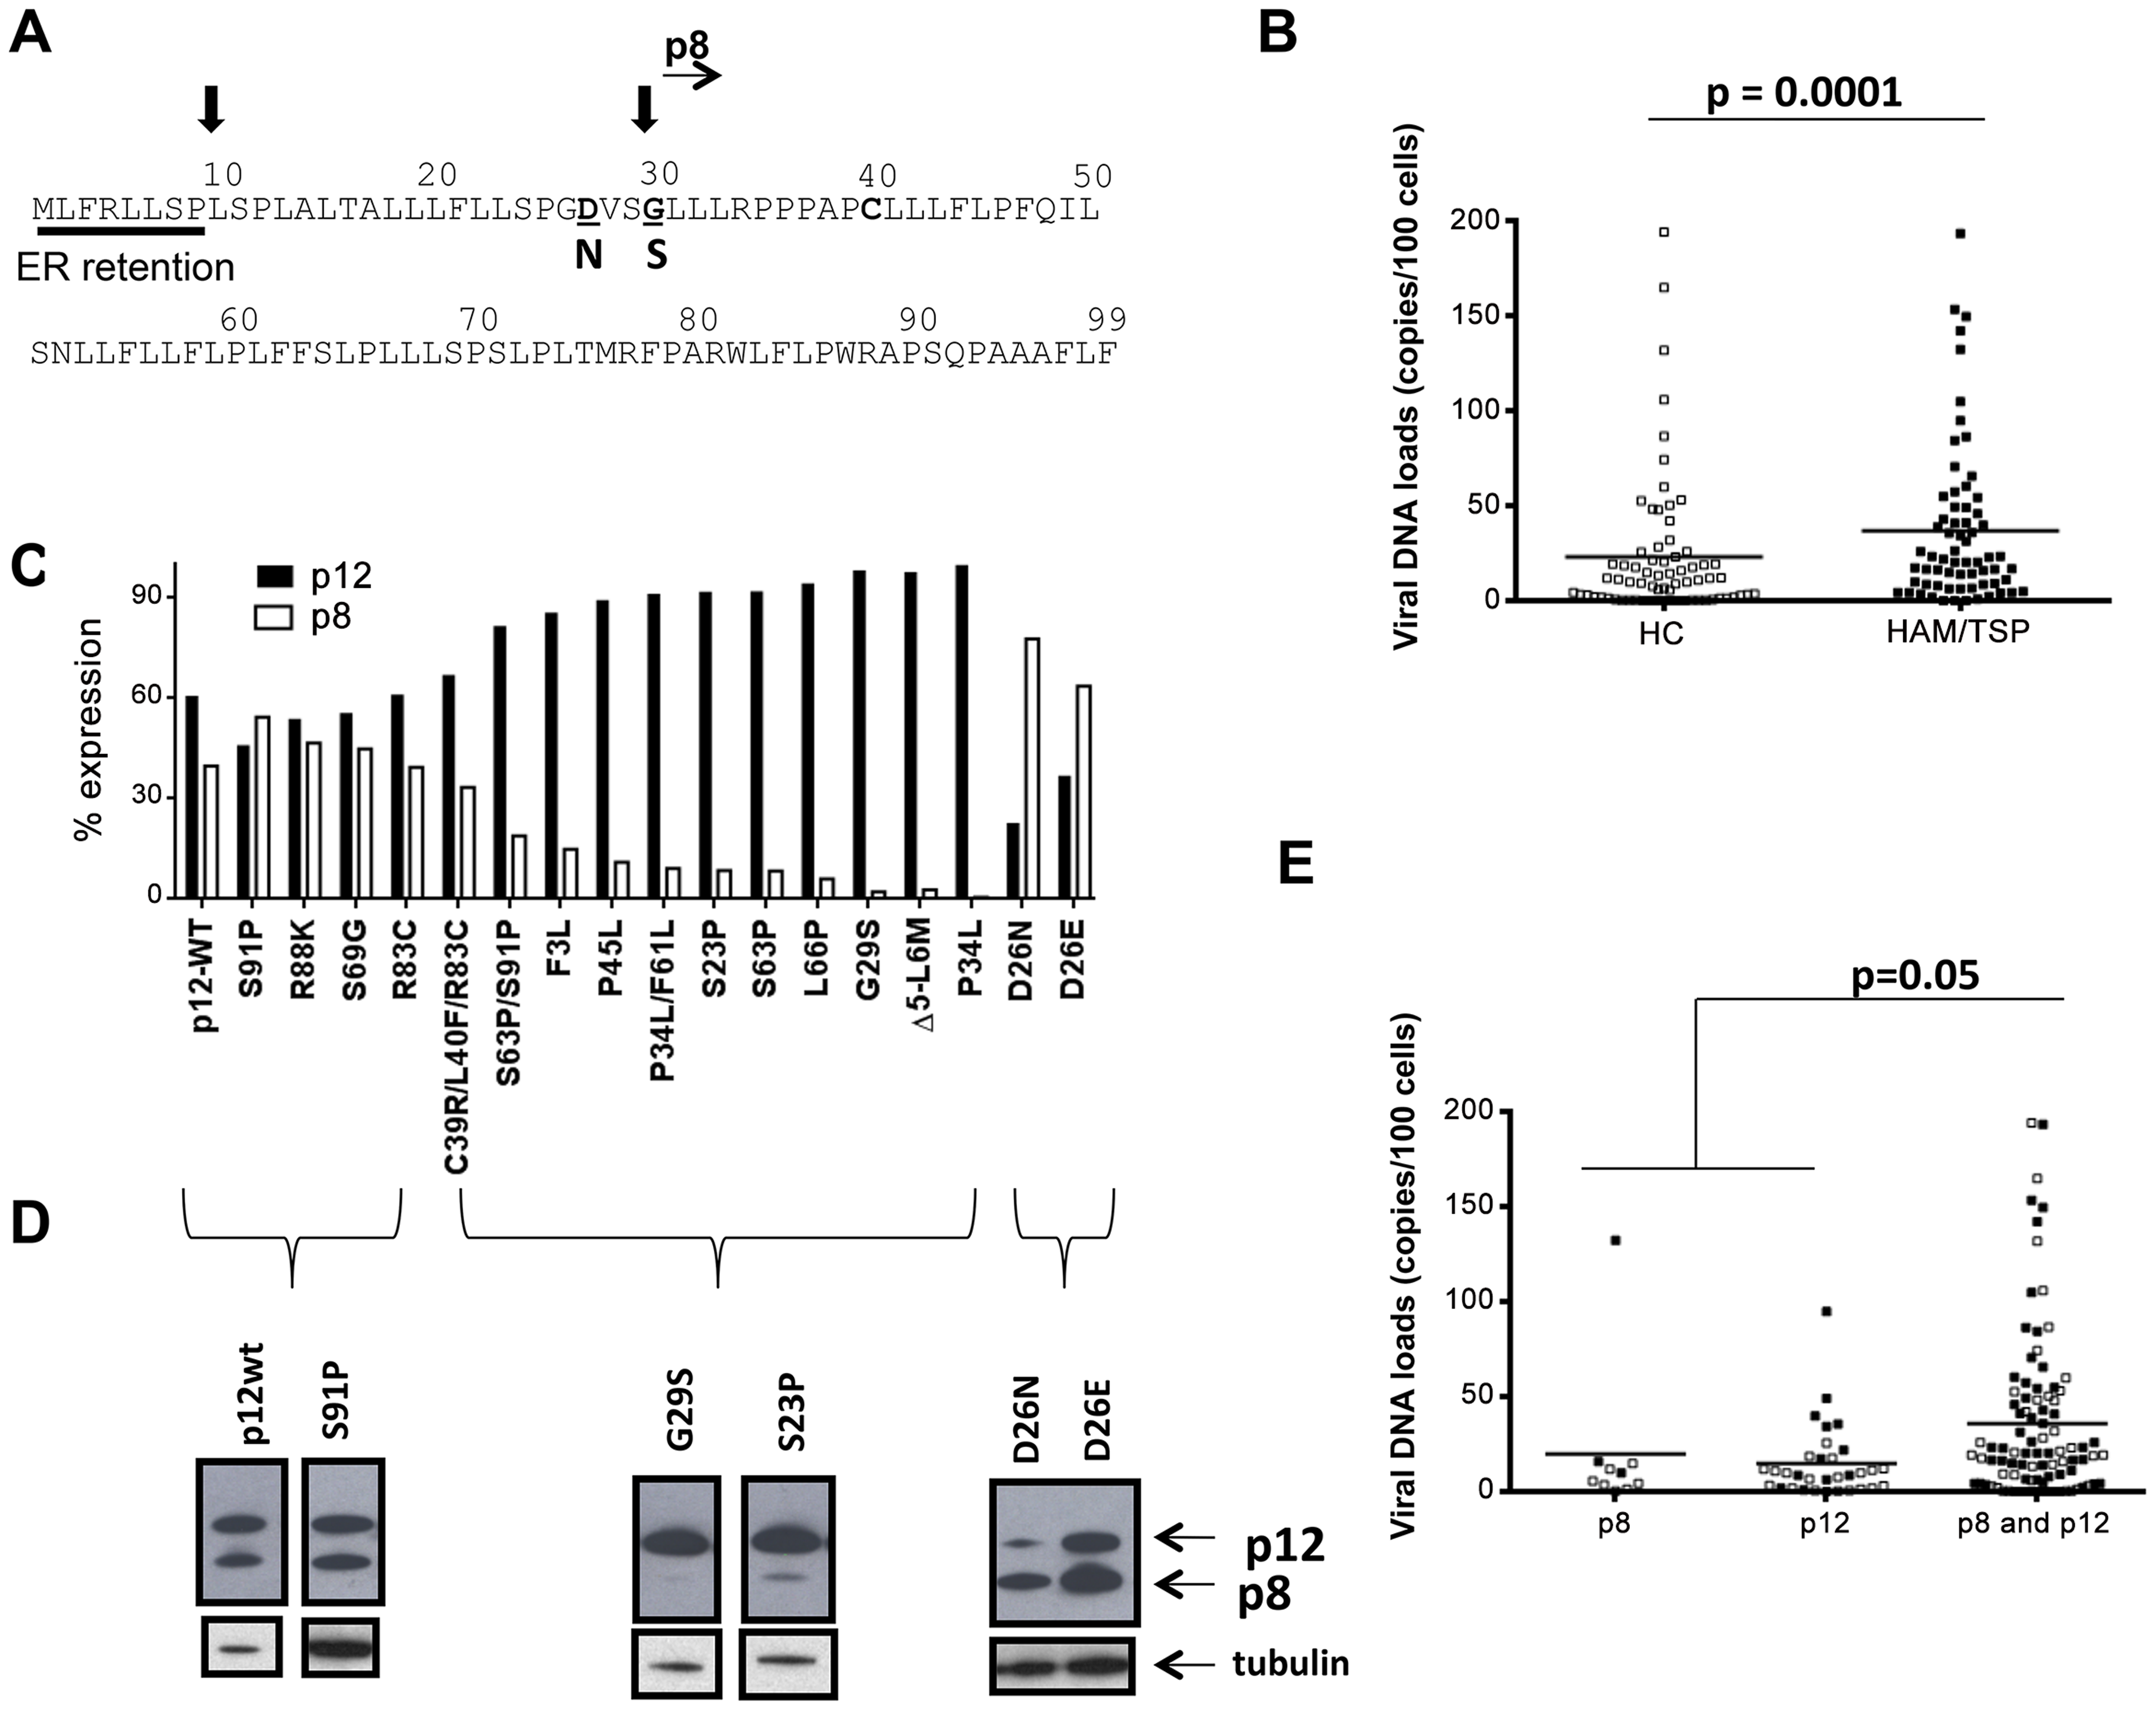 Analysis of <i>orf-I</i> from the PBMCs of HTLV-1 infected individuals.